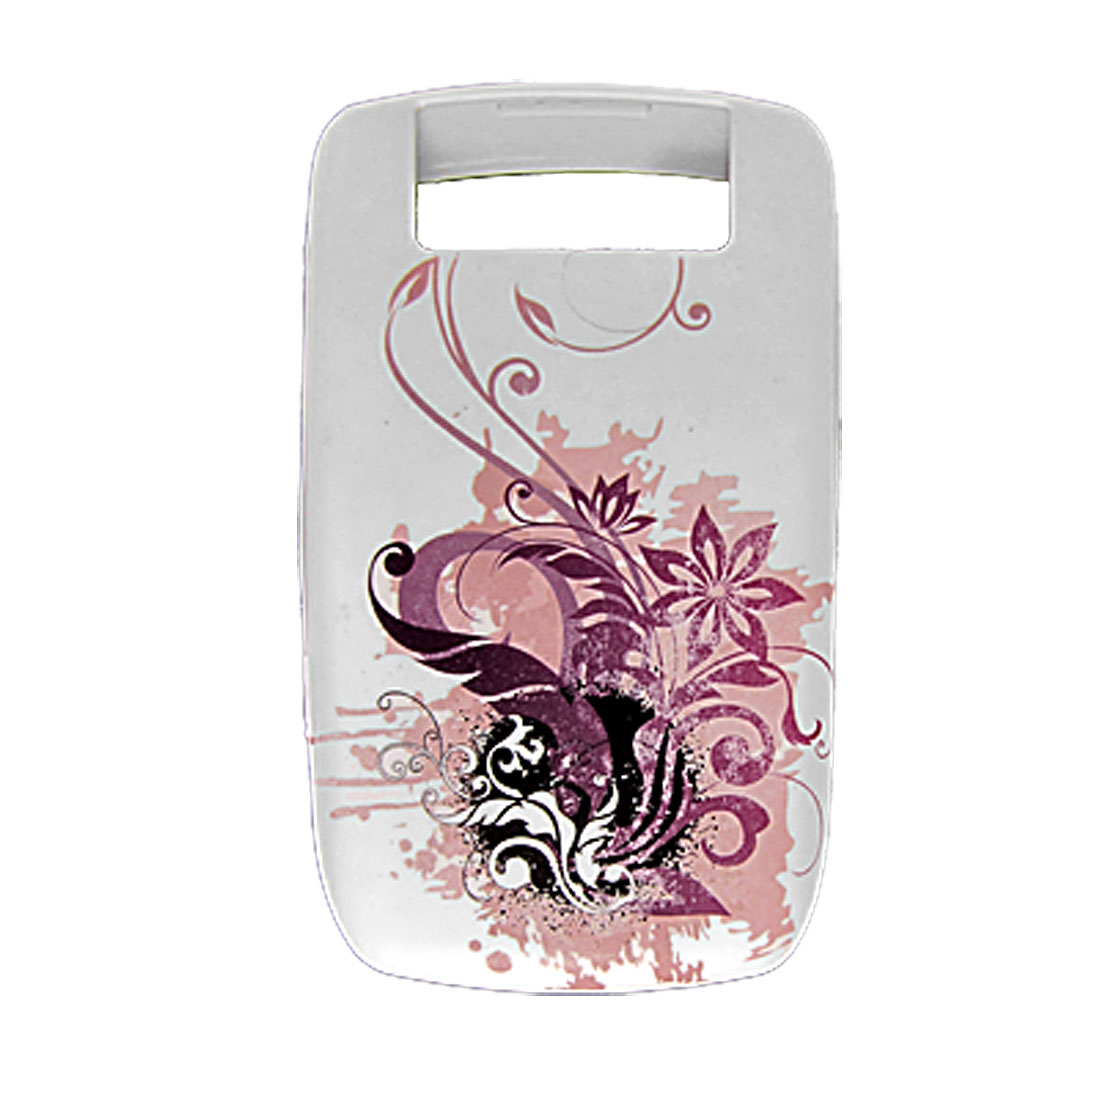 Rubberized Soft Plastic Floral Shell Case for Blackberry 8900